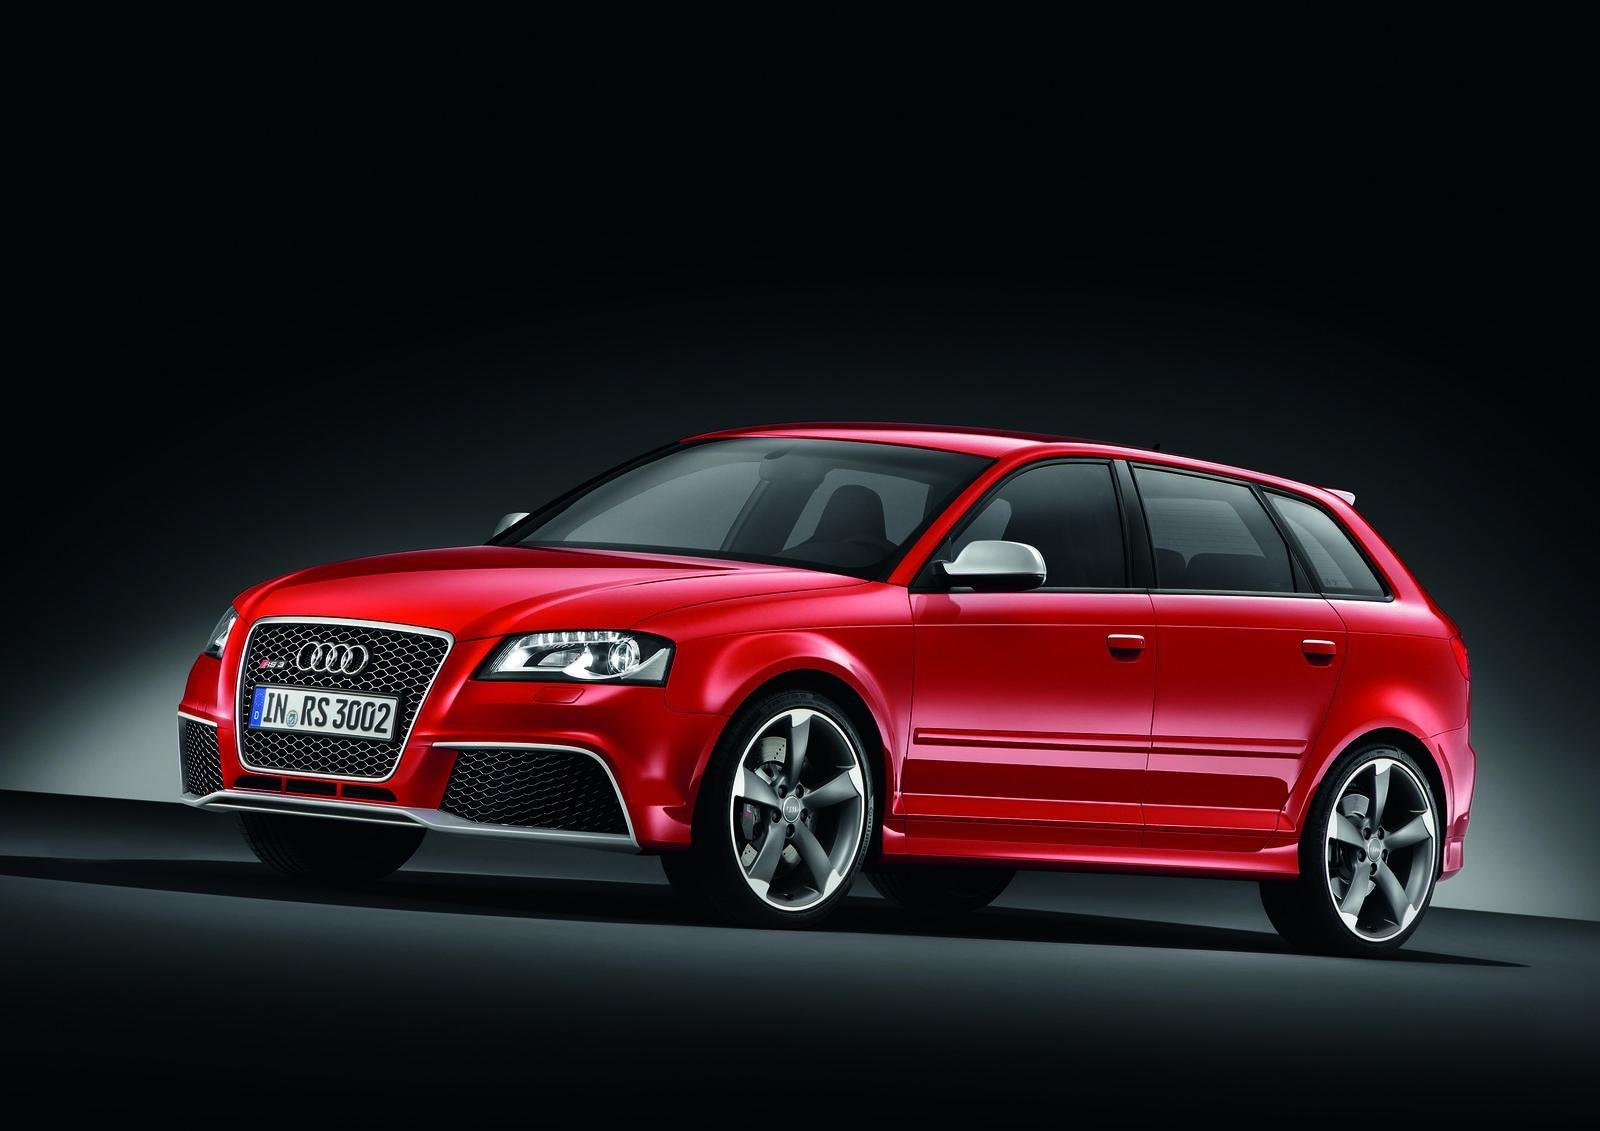 Audi RS 3 I 2011 - 2012 Hatchback 5 door #2